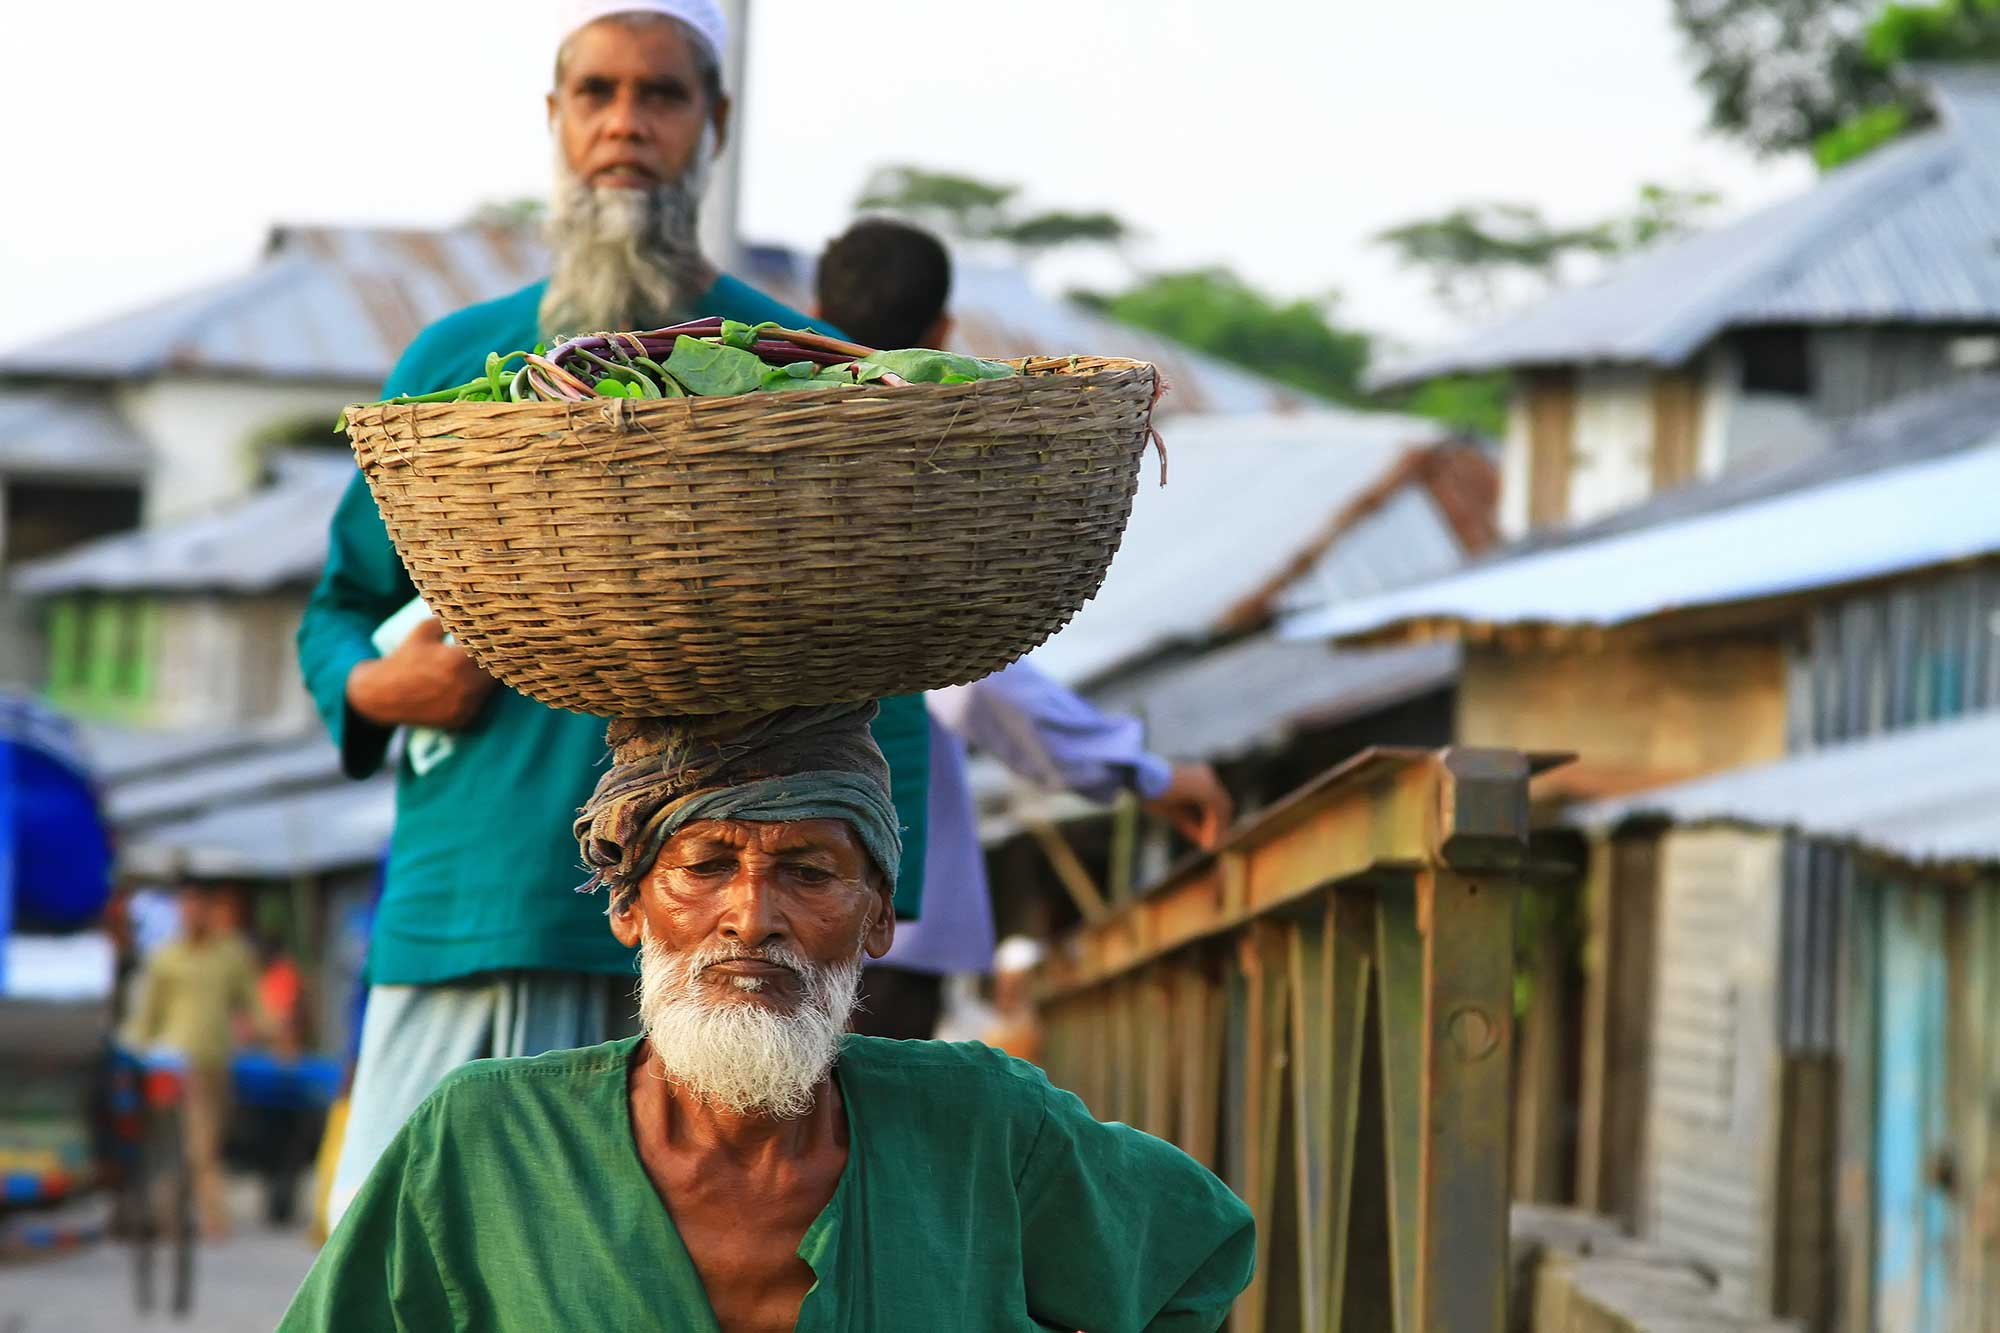 On the way to the market in Galachipa, Bangladesh. © Ulli Maier & Nisa Maier